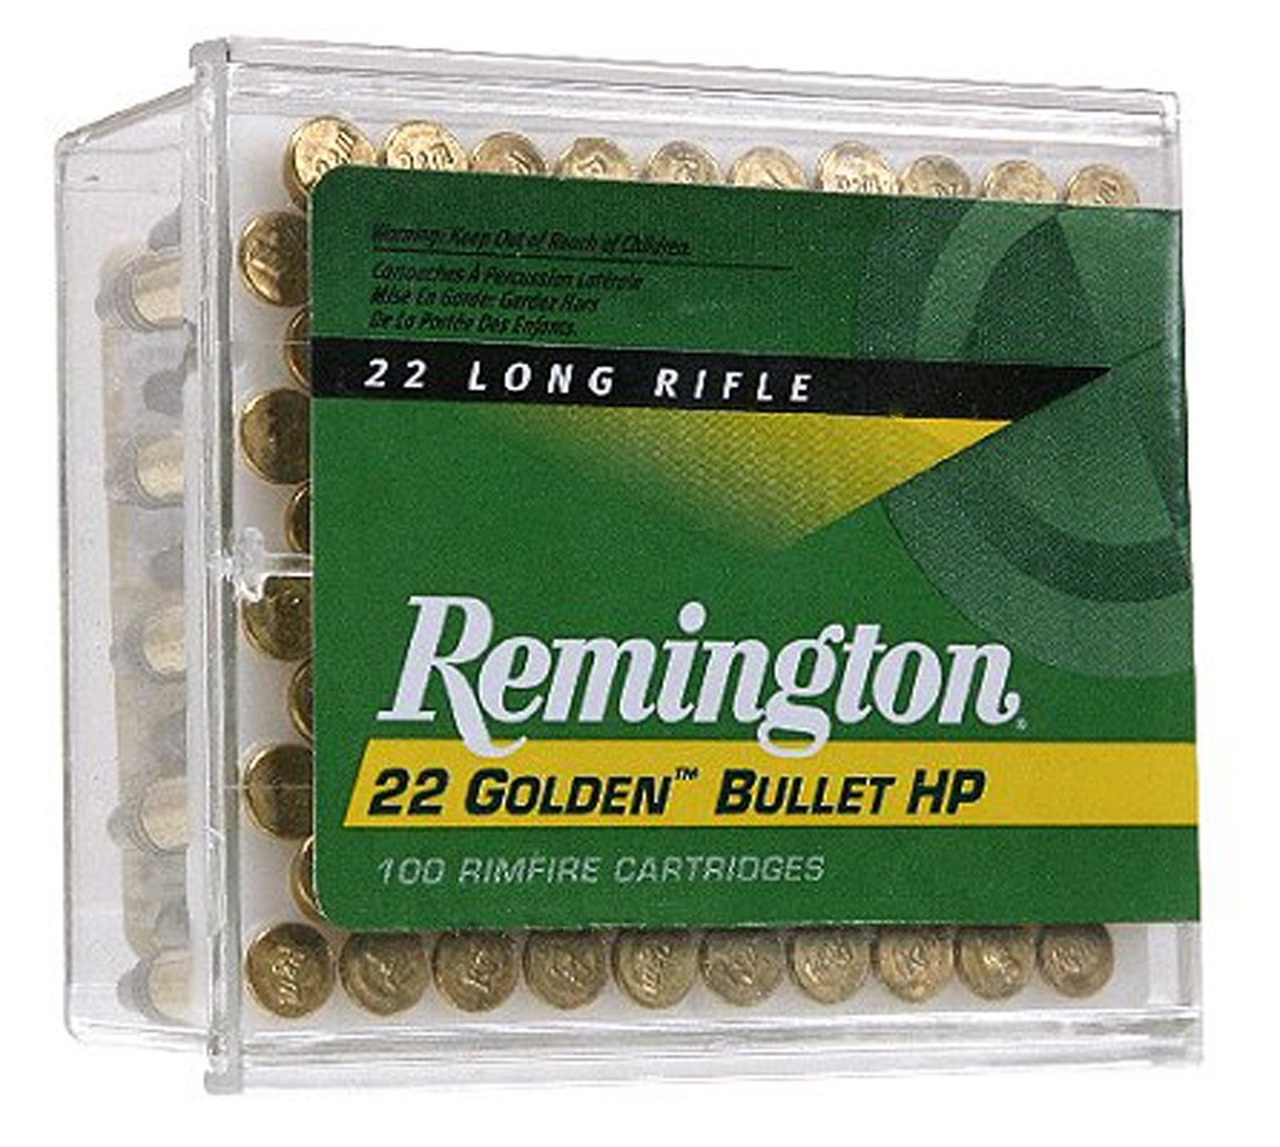 remingtongoldenbullet.jpg